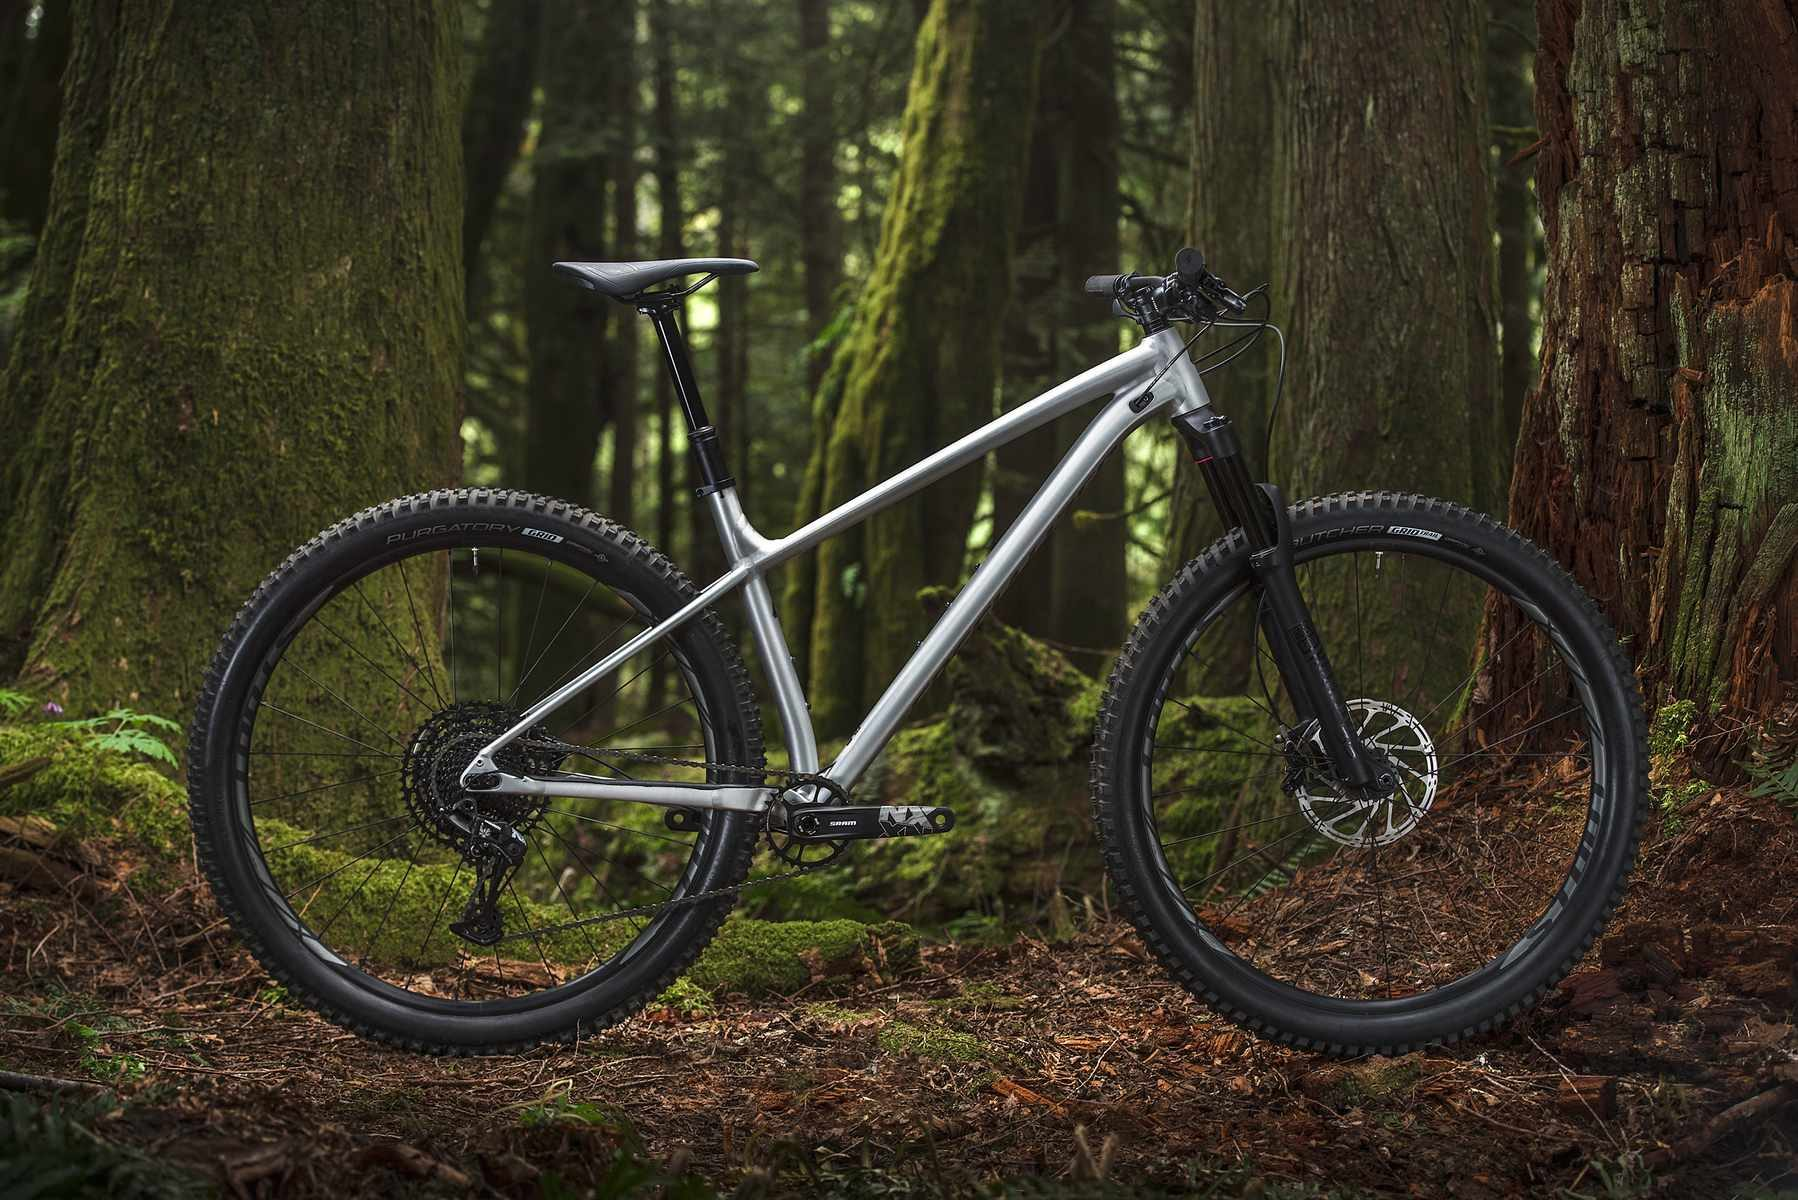 Best Trail Bike 2020.Specialized Announces All New Fuse Trail Hardtail For 2020